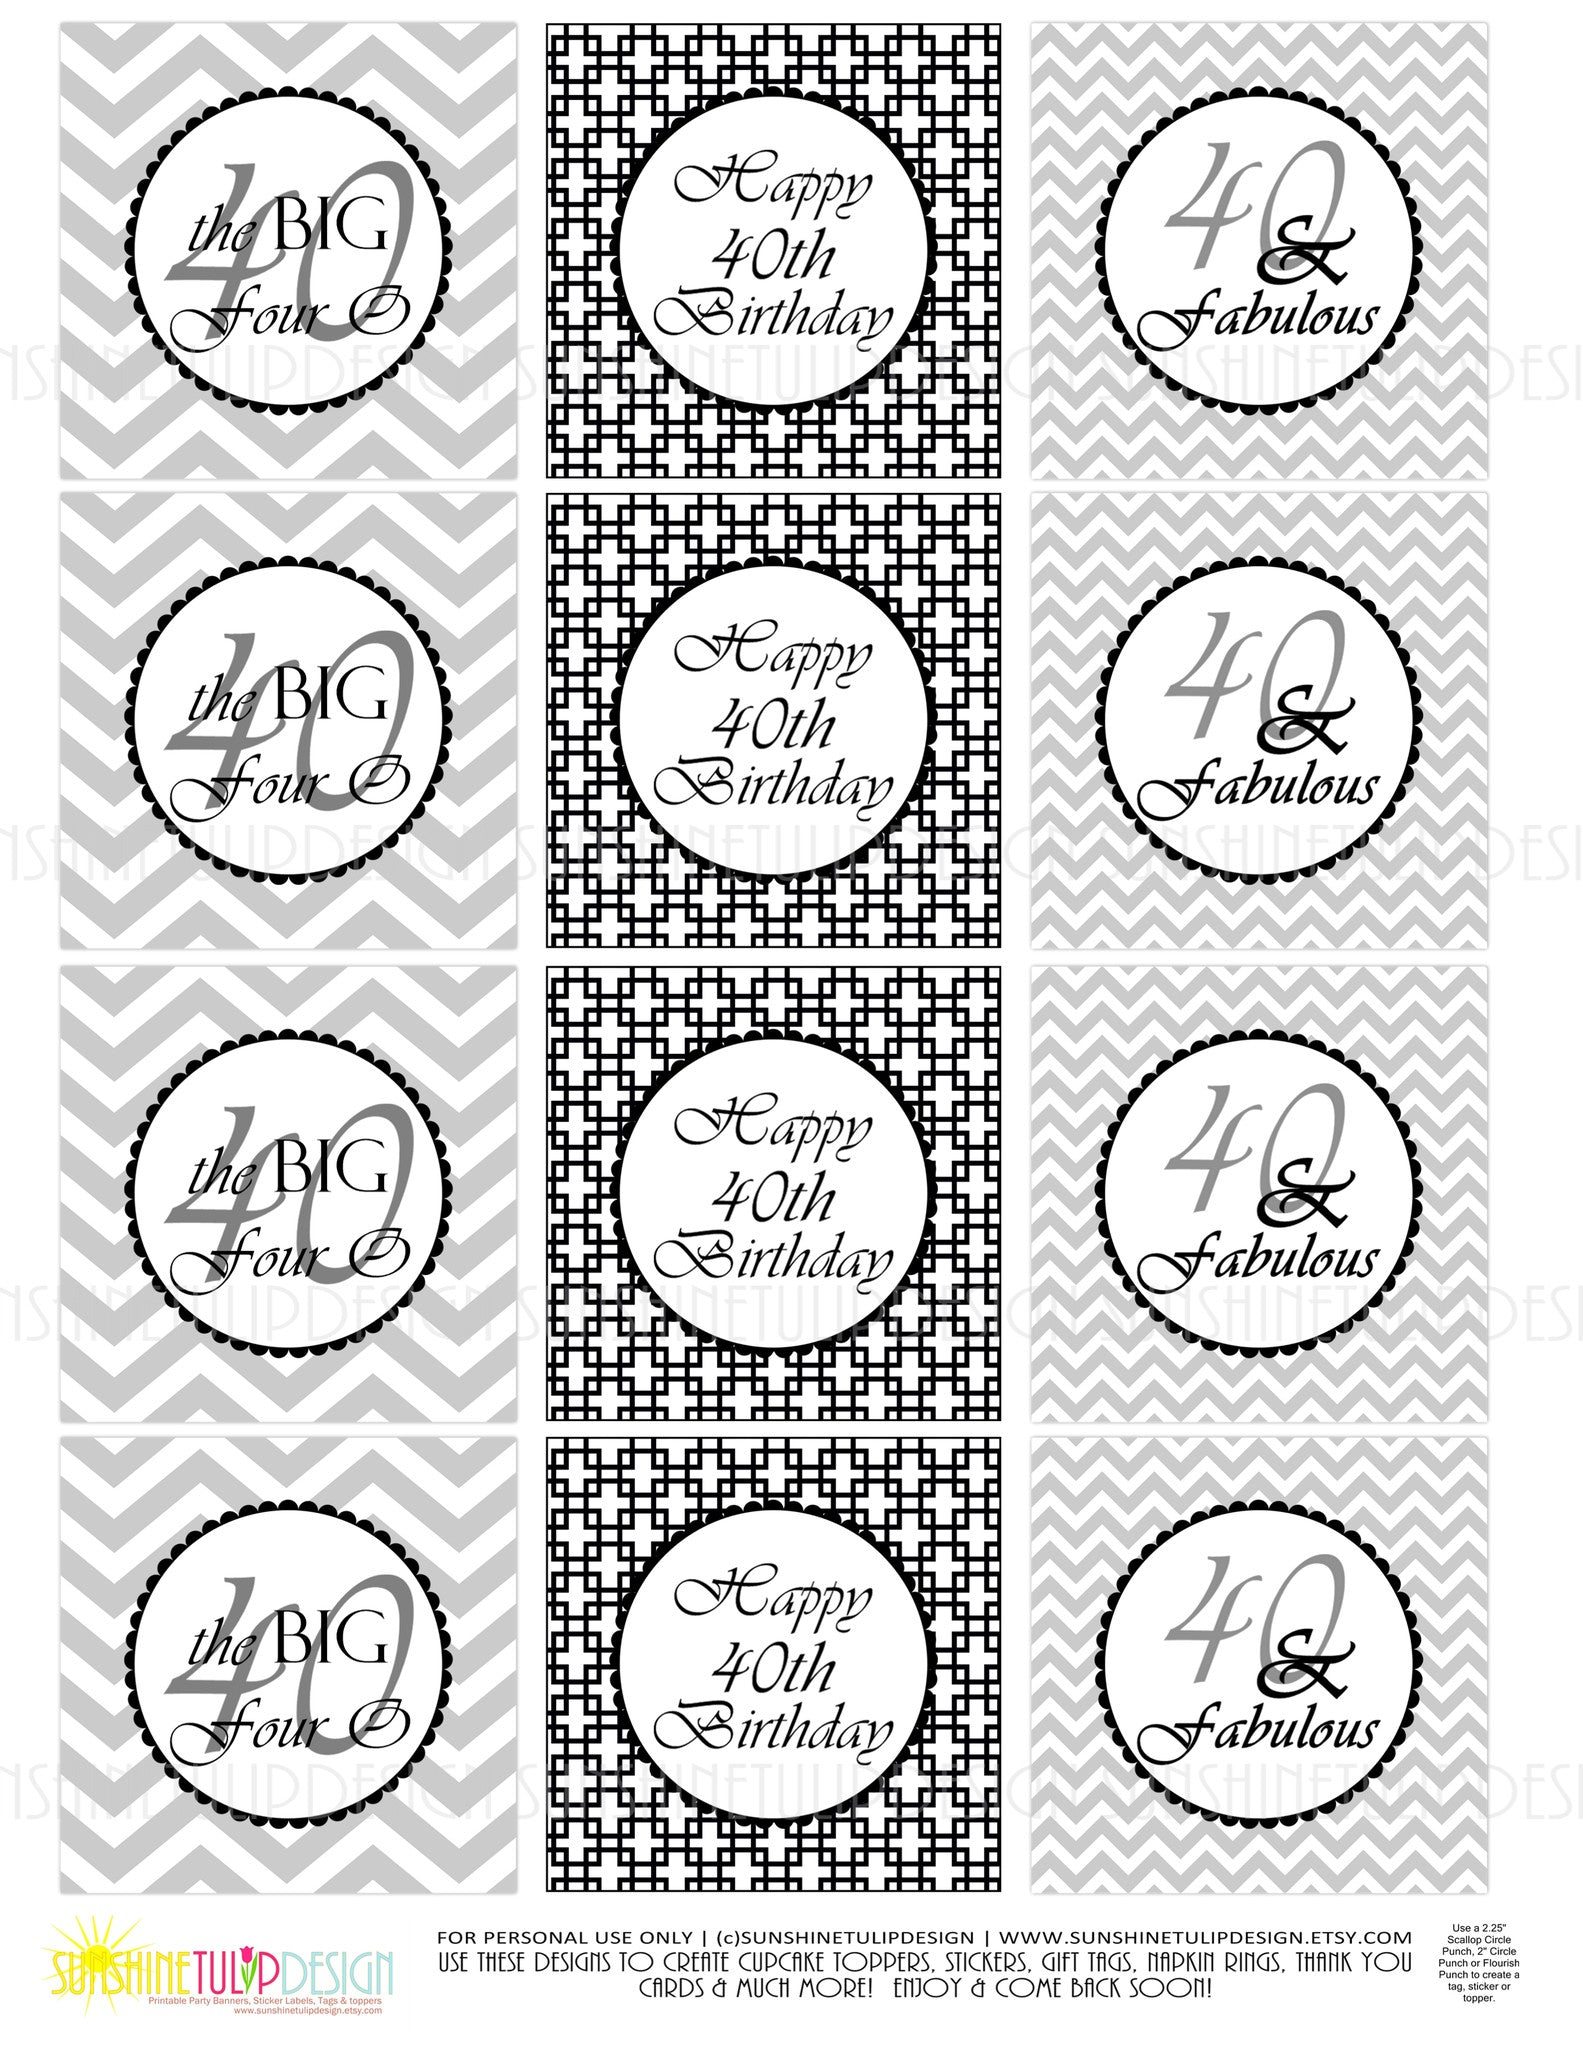 photo regarding Printable Sticker Labels called Printable 40th Birthday Black Grey Birthday Cupcake Toppers, Sticker Labels Bash Desire Tags